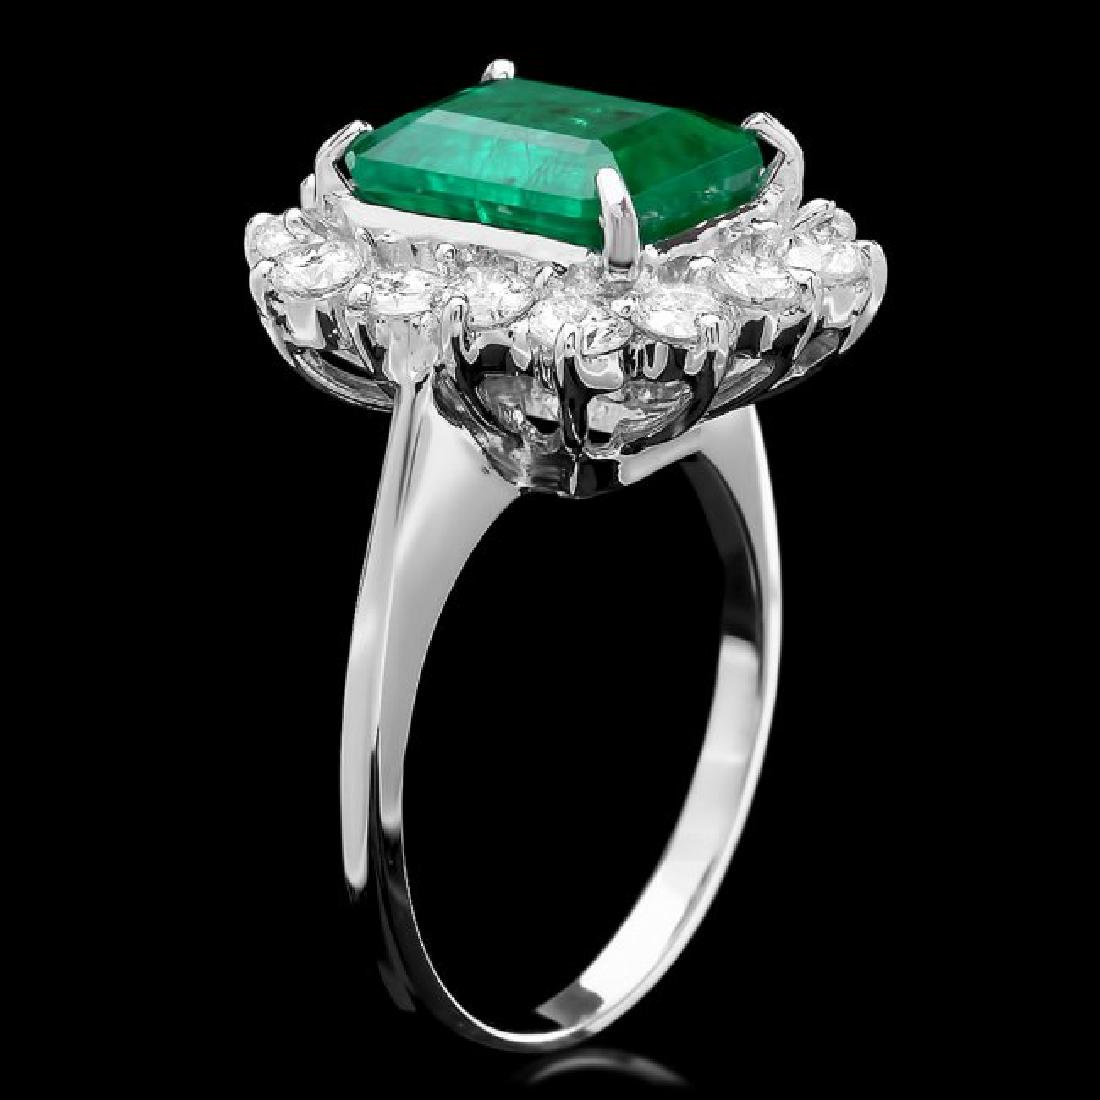 14k White Gold 3.13ct Emerald 1.35ct Diamond Ring - 2